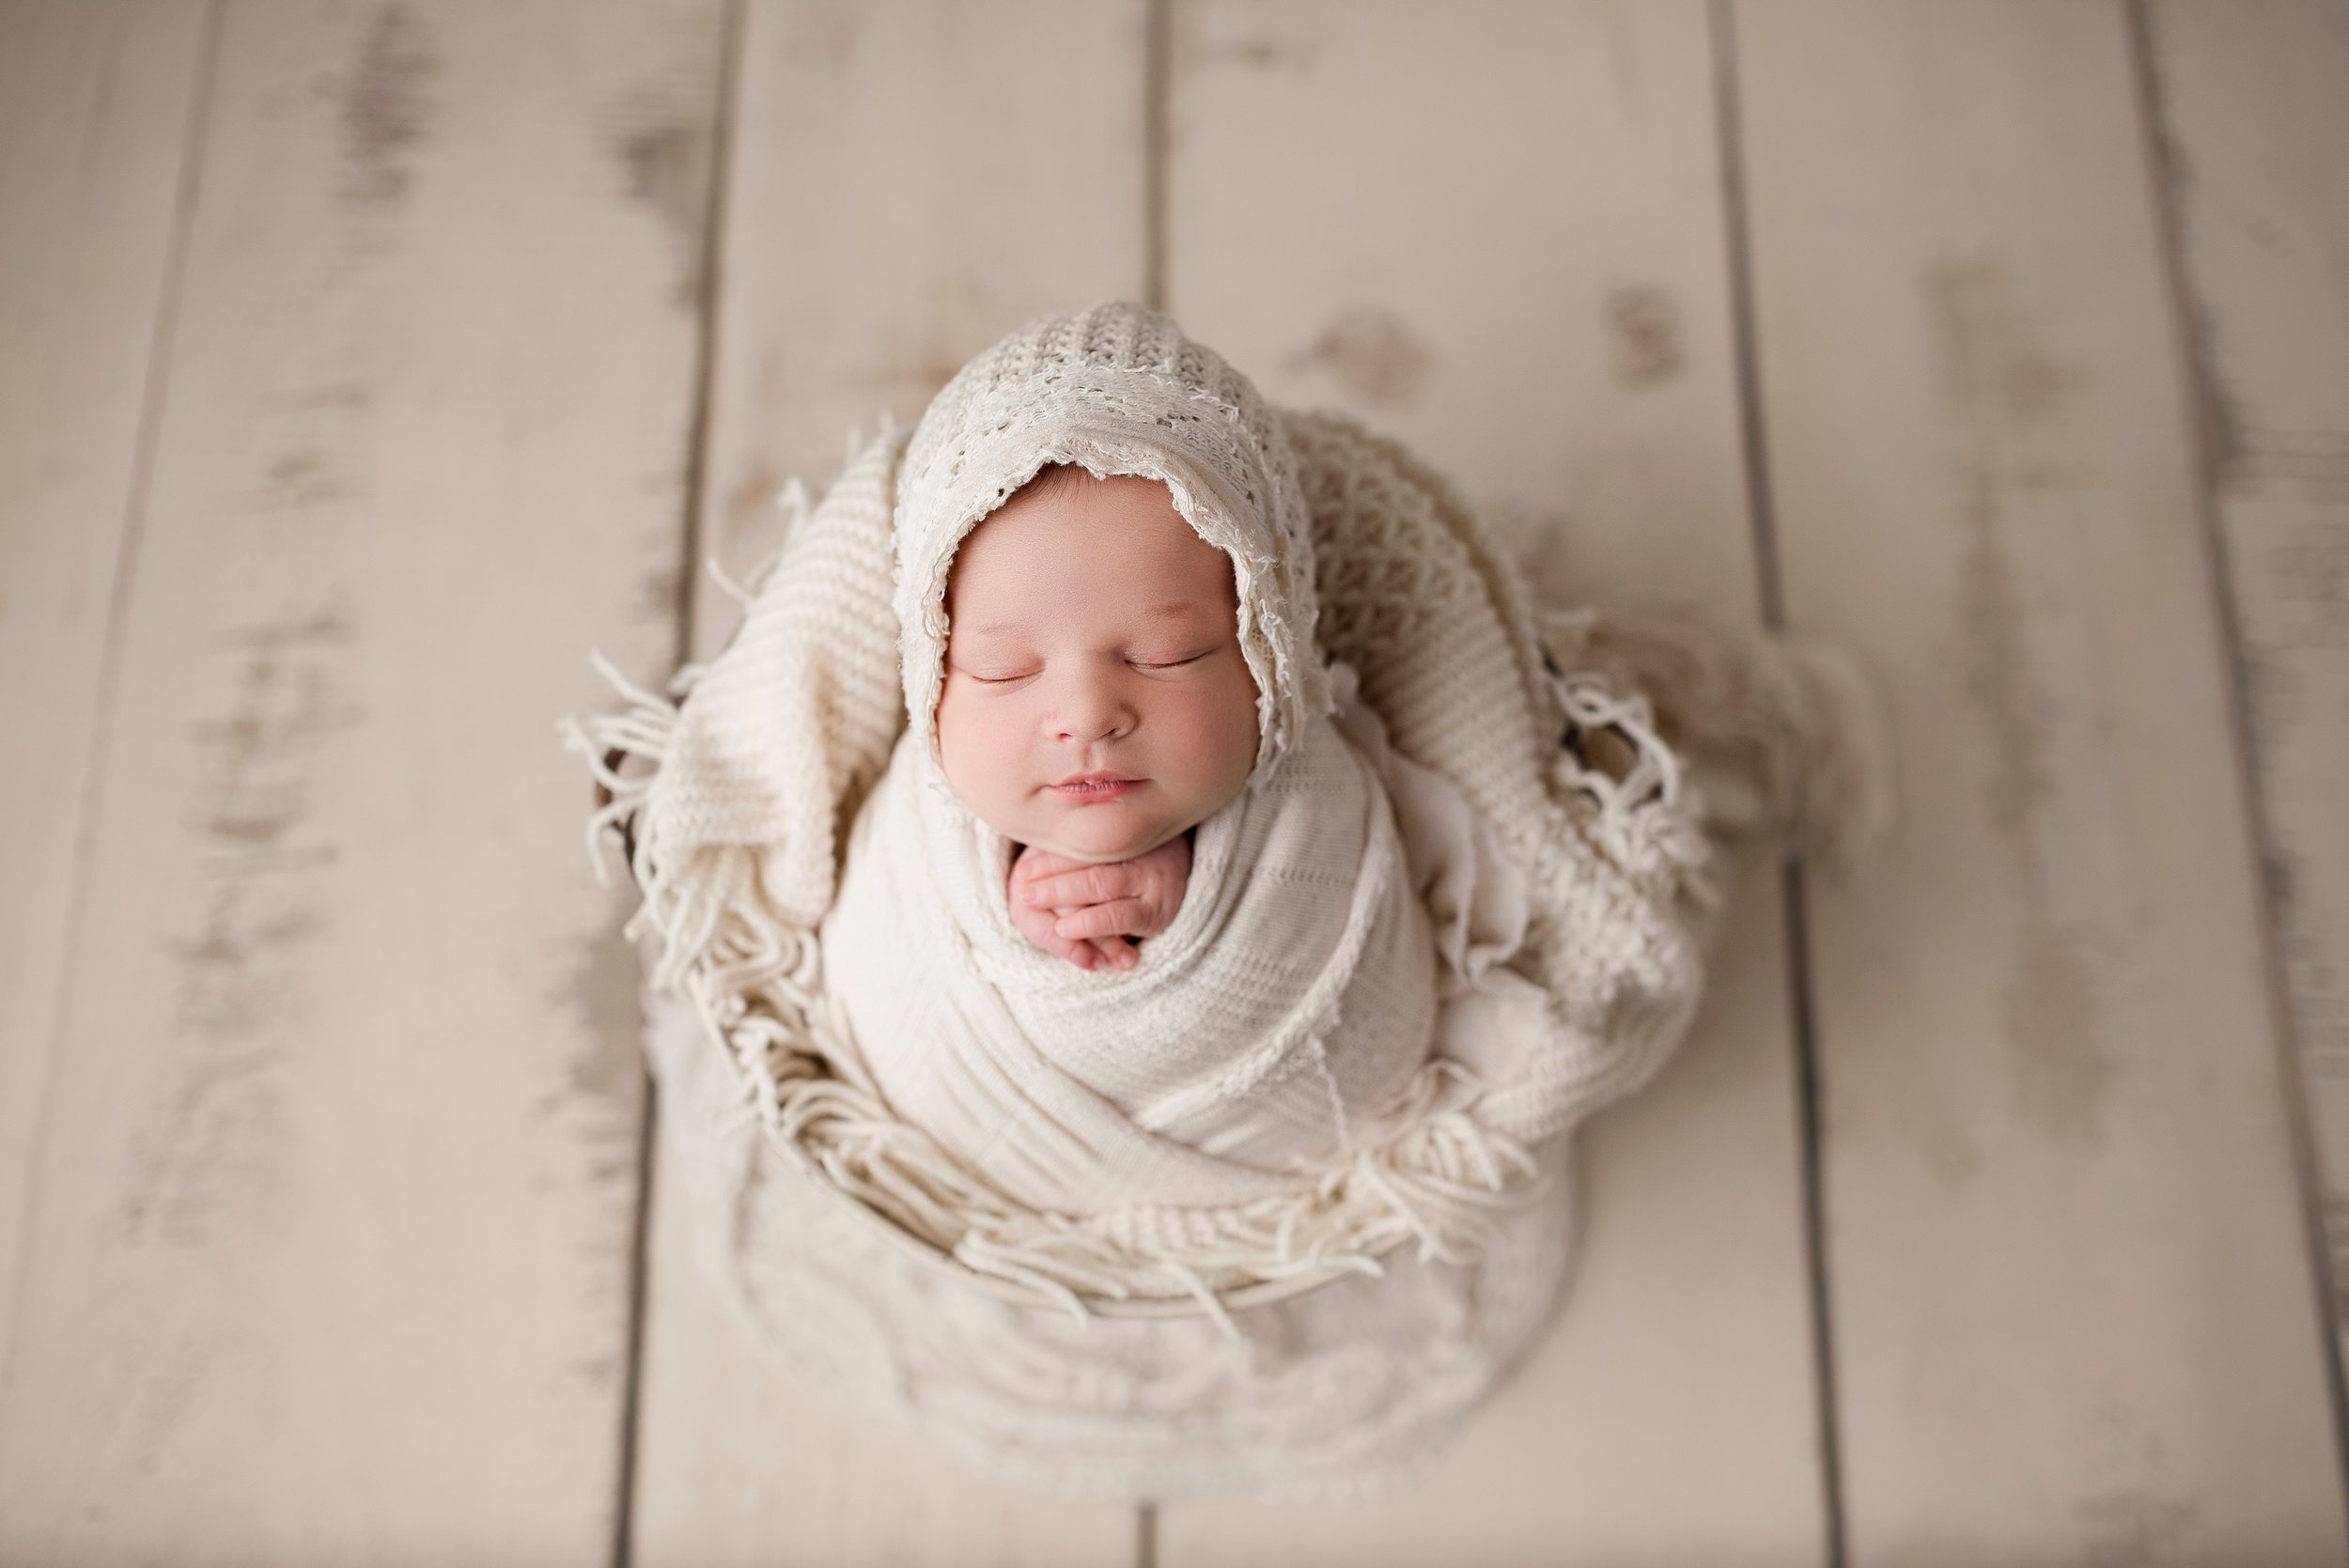 Newborn photography neutral props